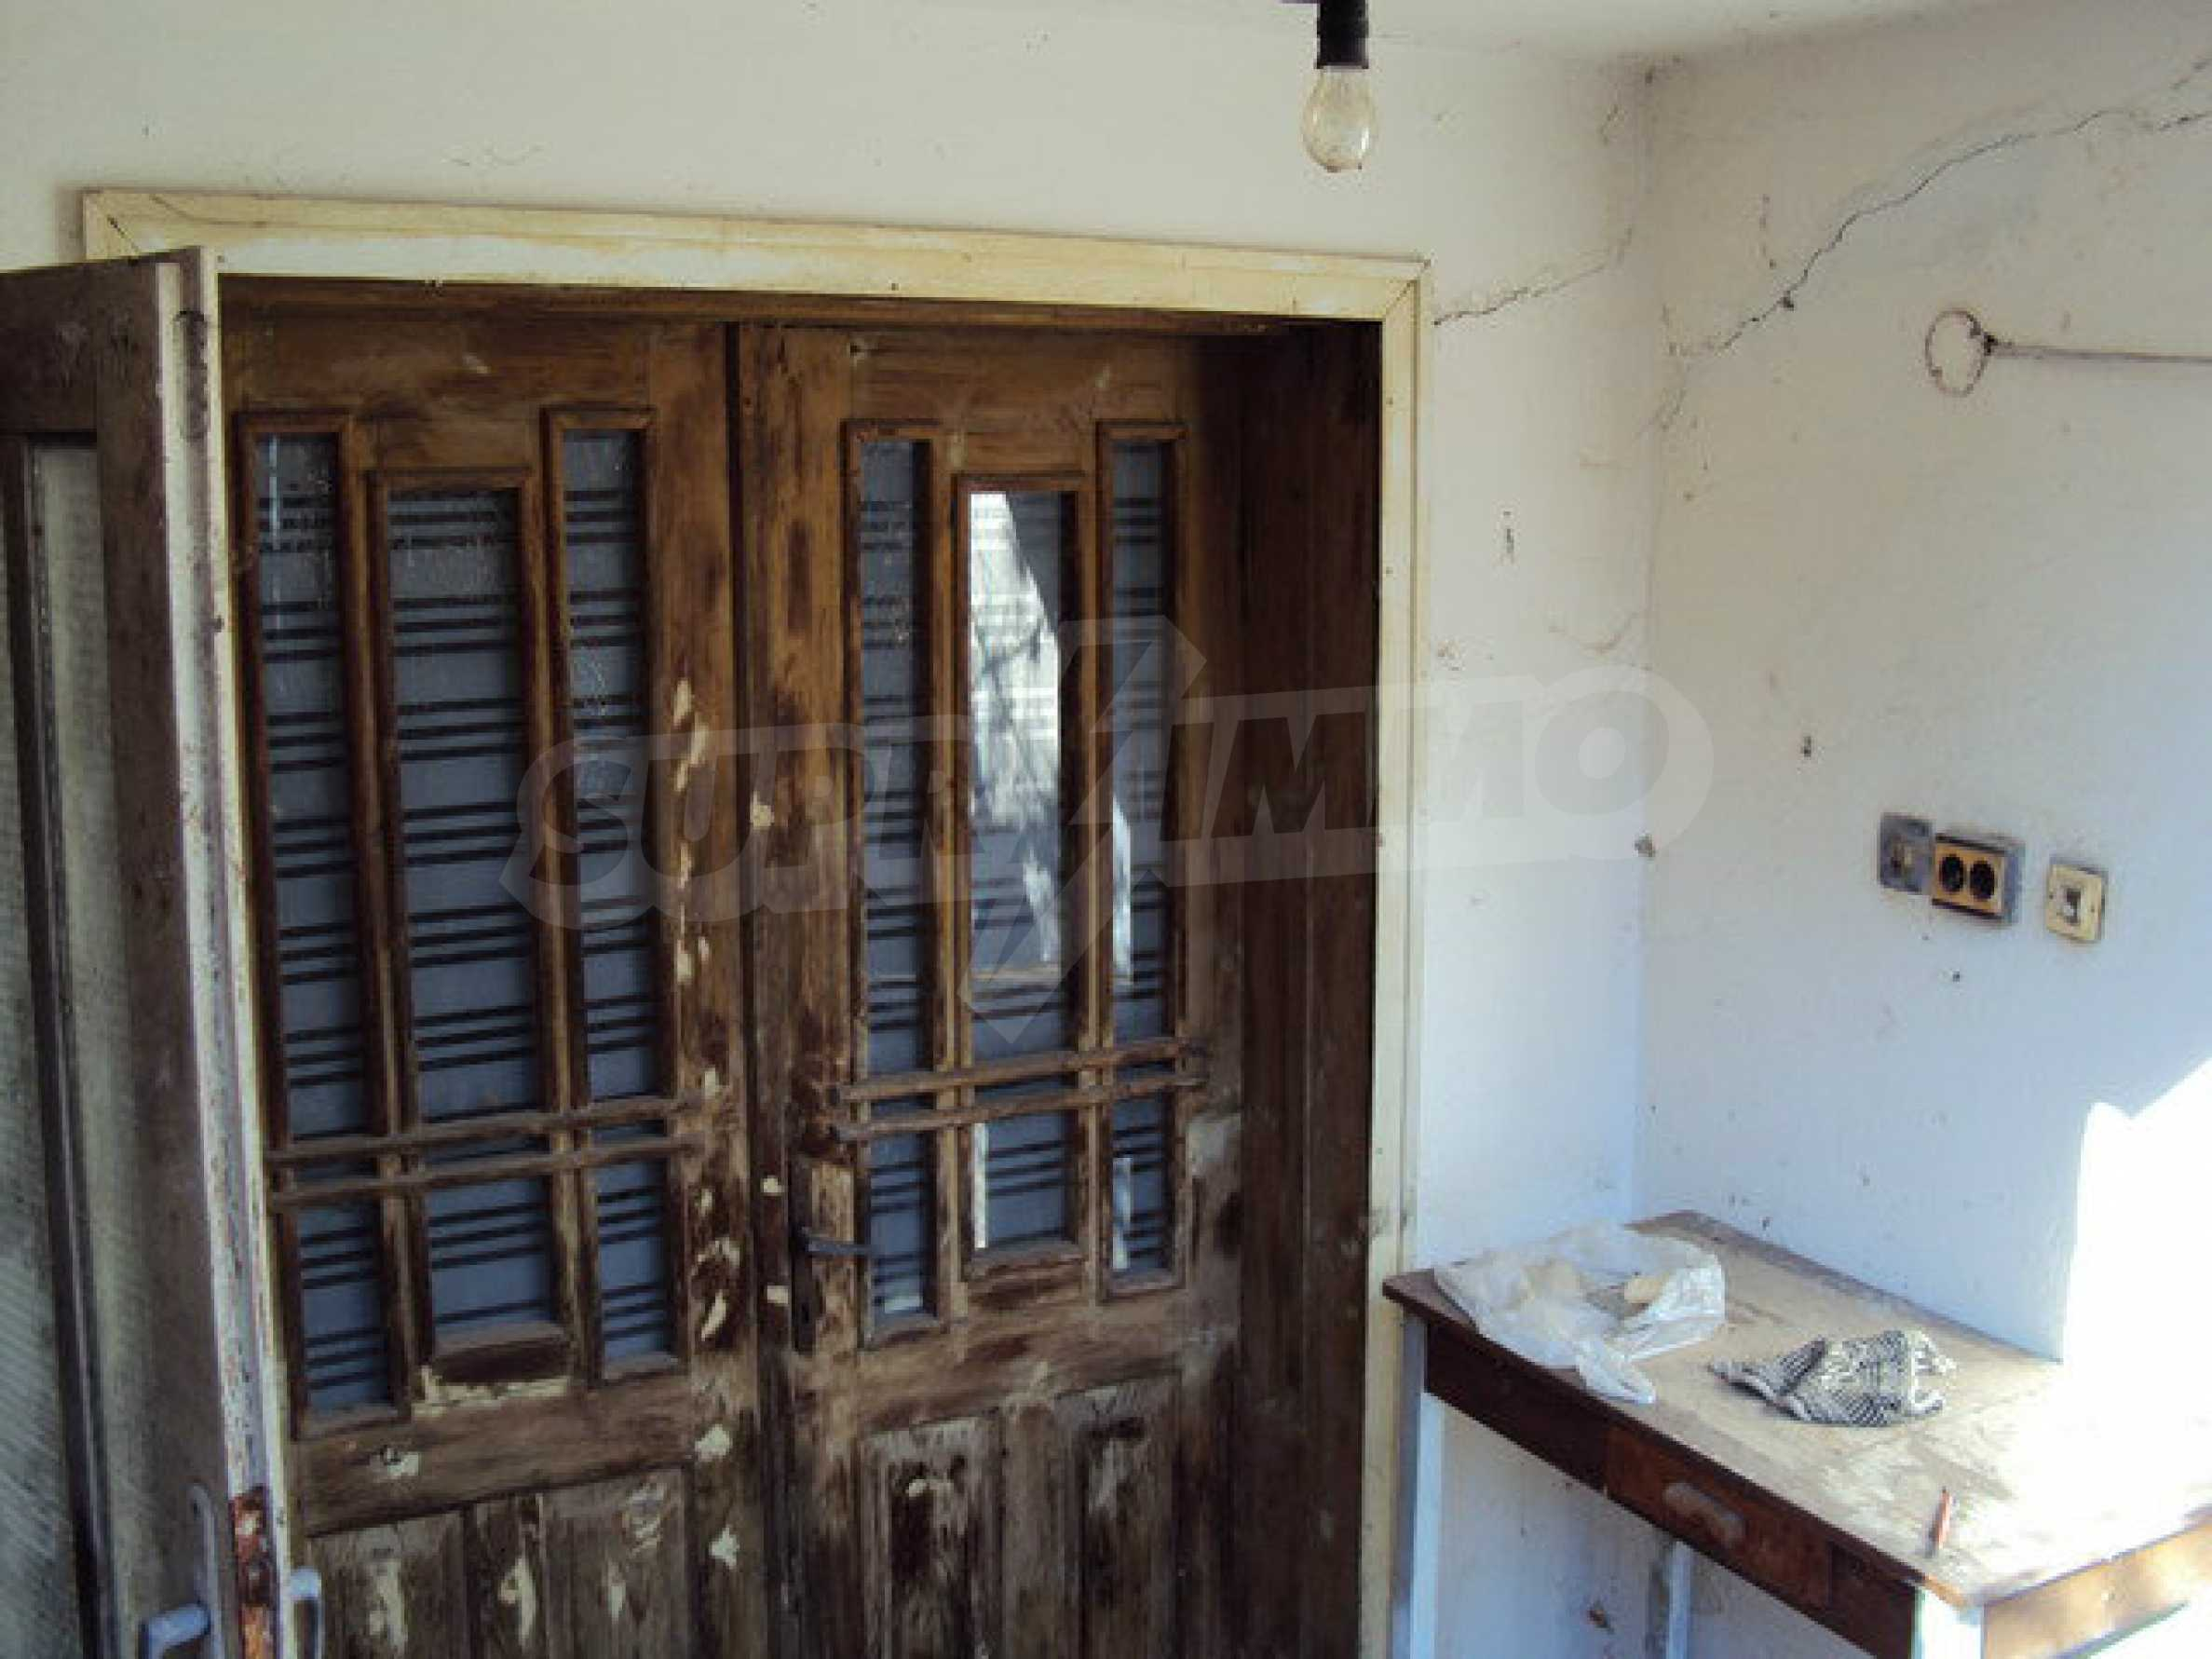 Spacious house in excellent condition in a village 25 km. the old capital of Veliko Tarnovo 22